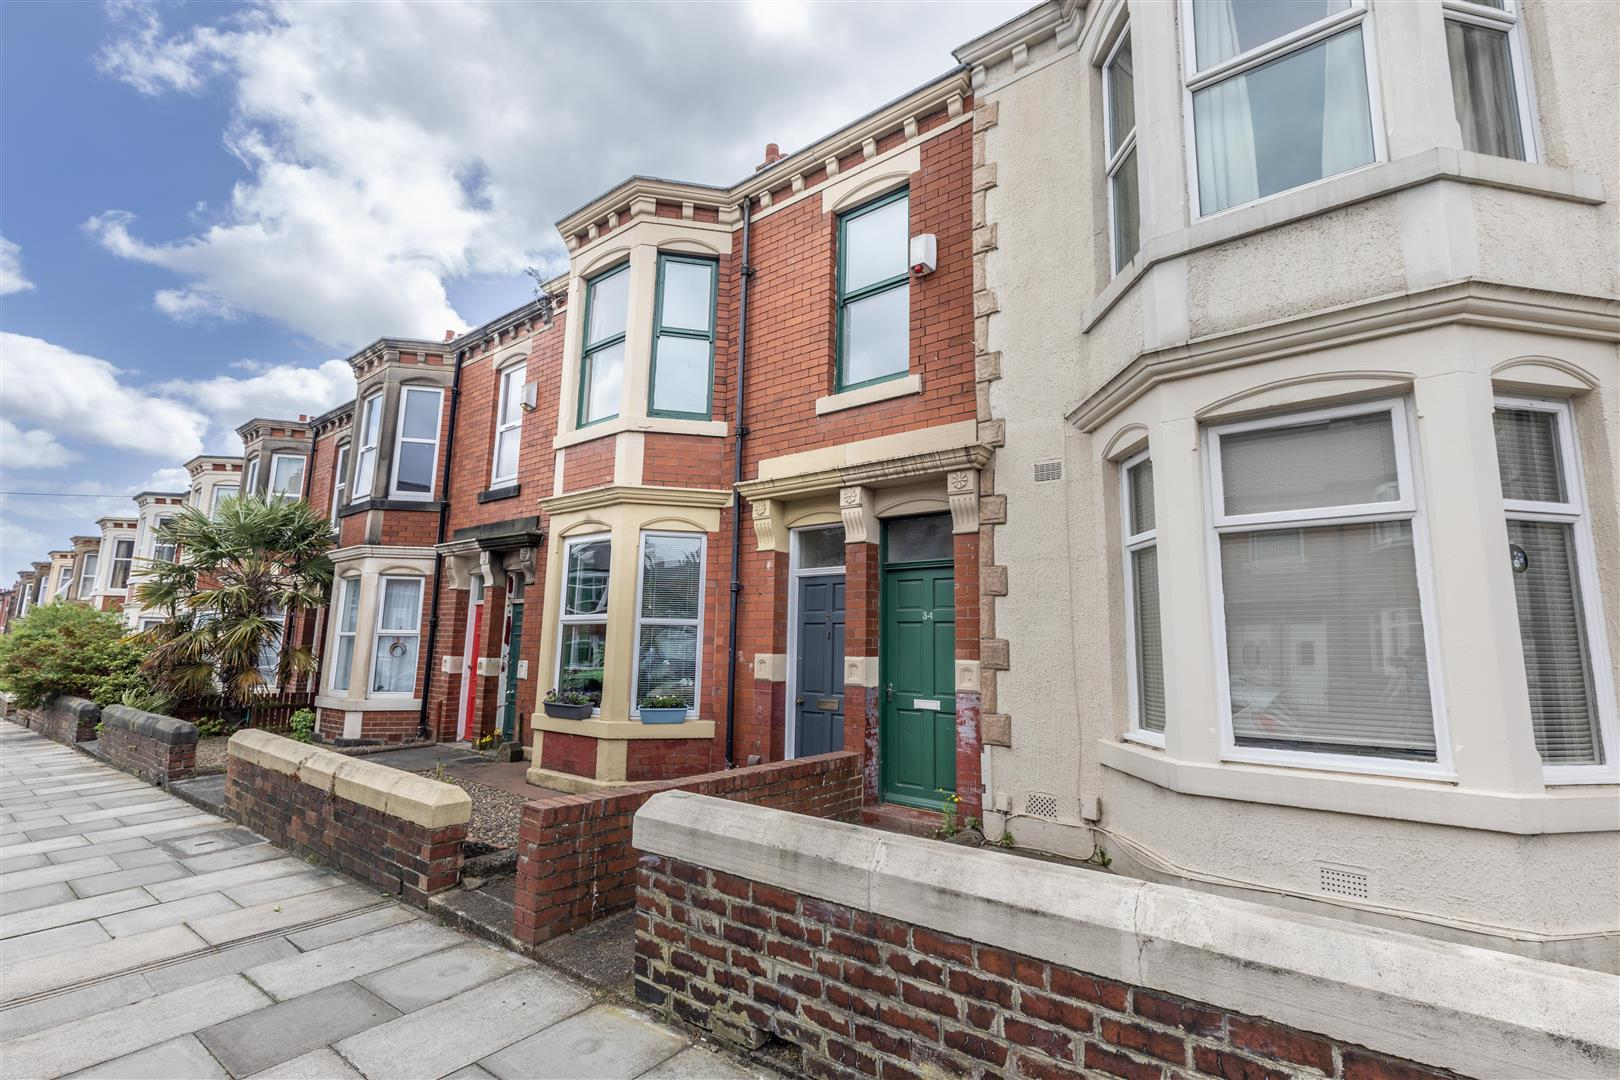 4 bed maisonette for sale in Newcastle Upon Tyne, NE6 5SL  - Property Image 1